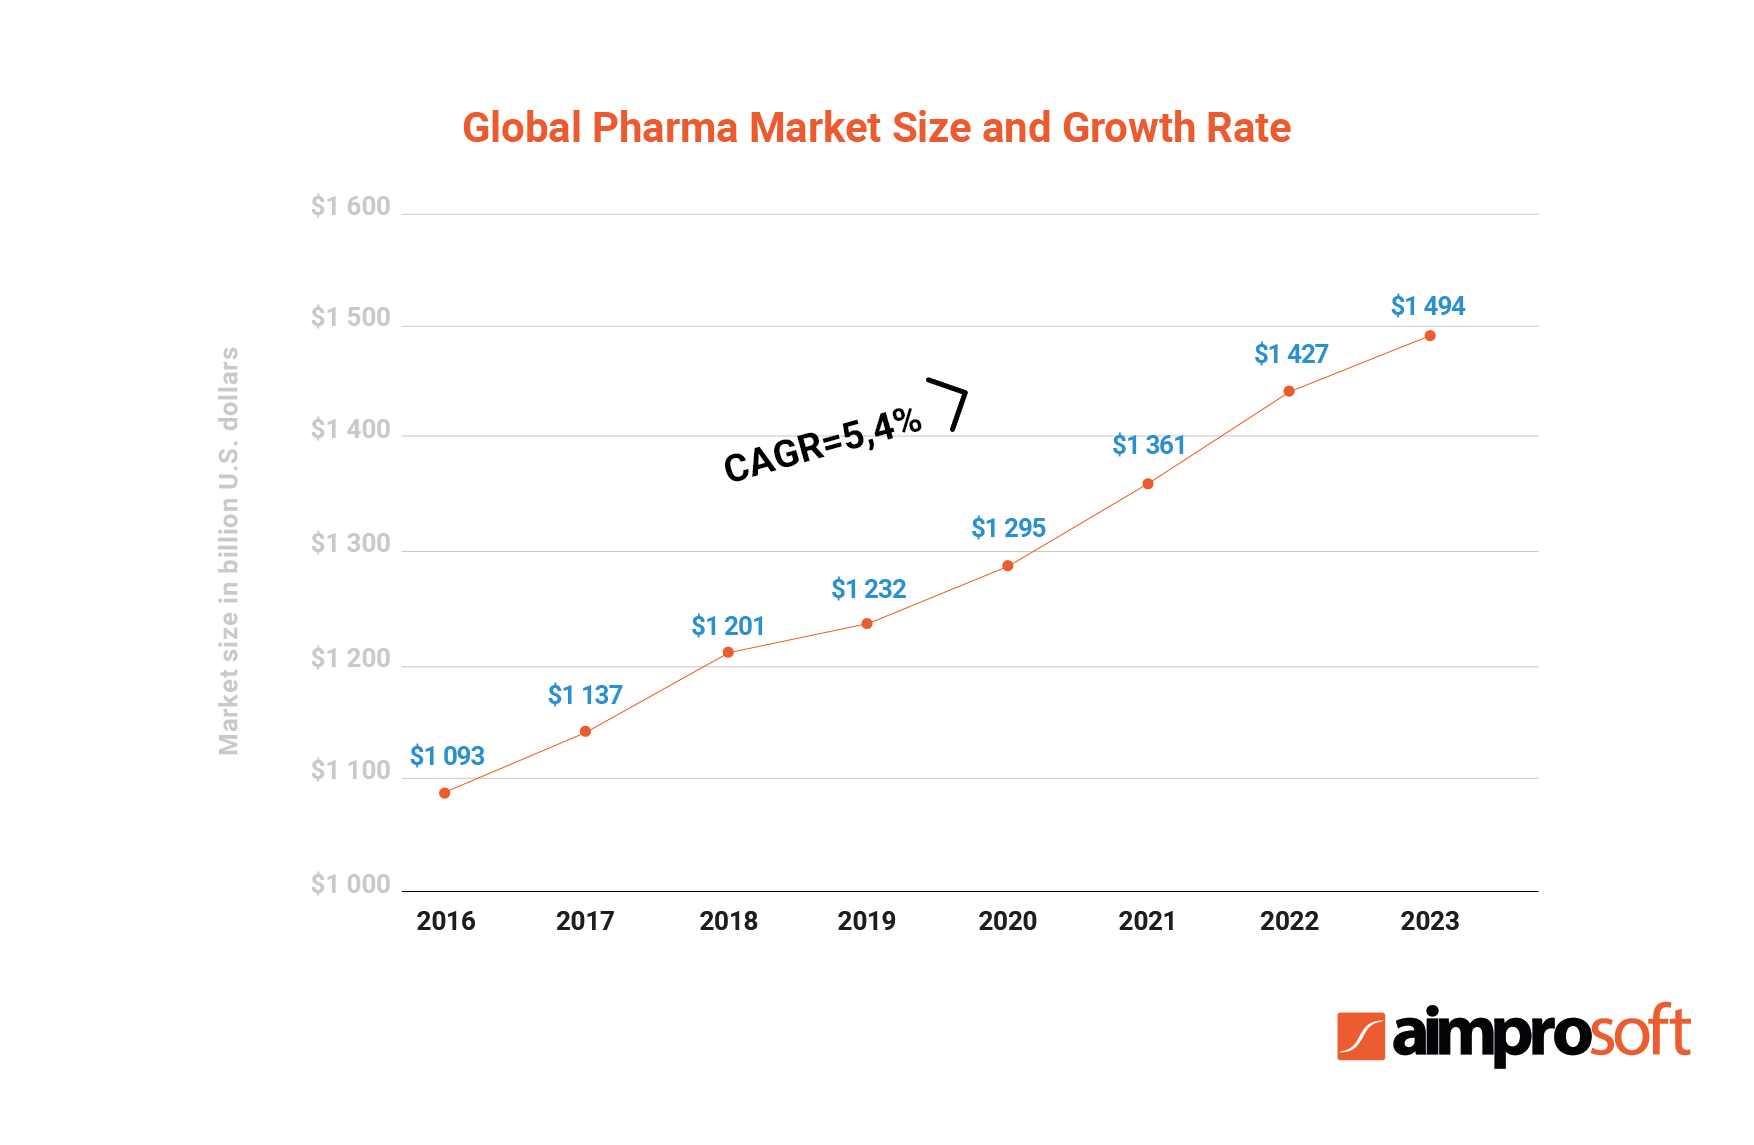 The growth of the pharmaceutical market